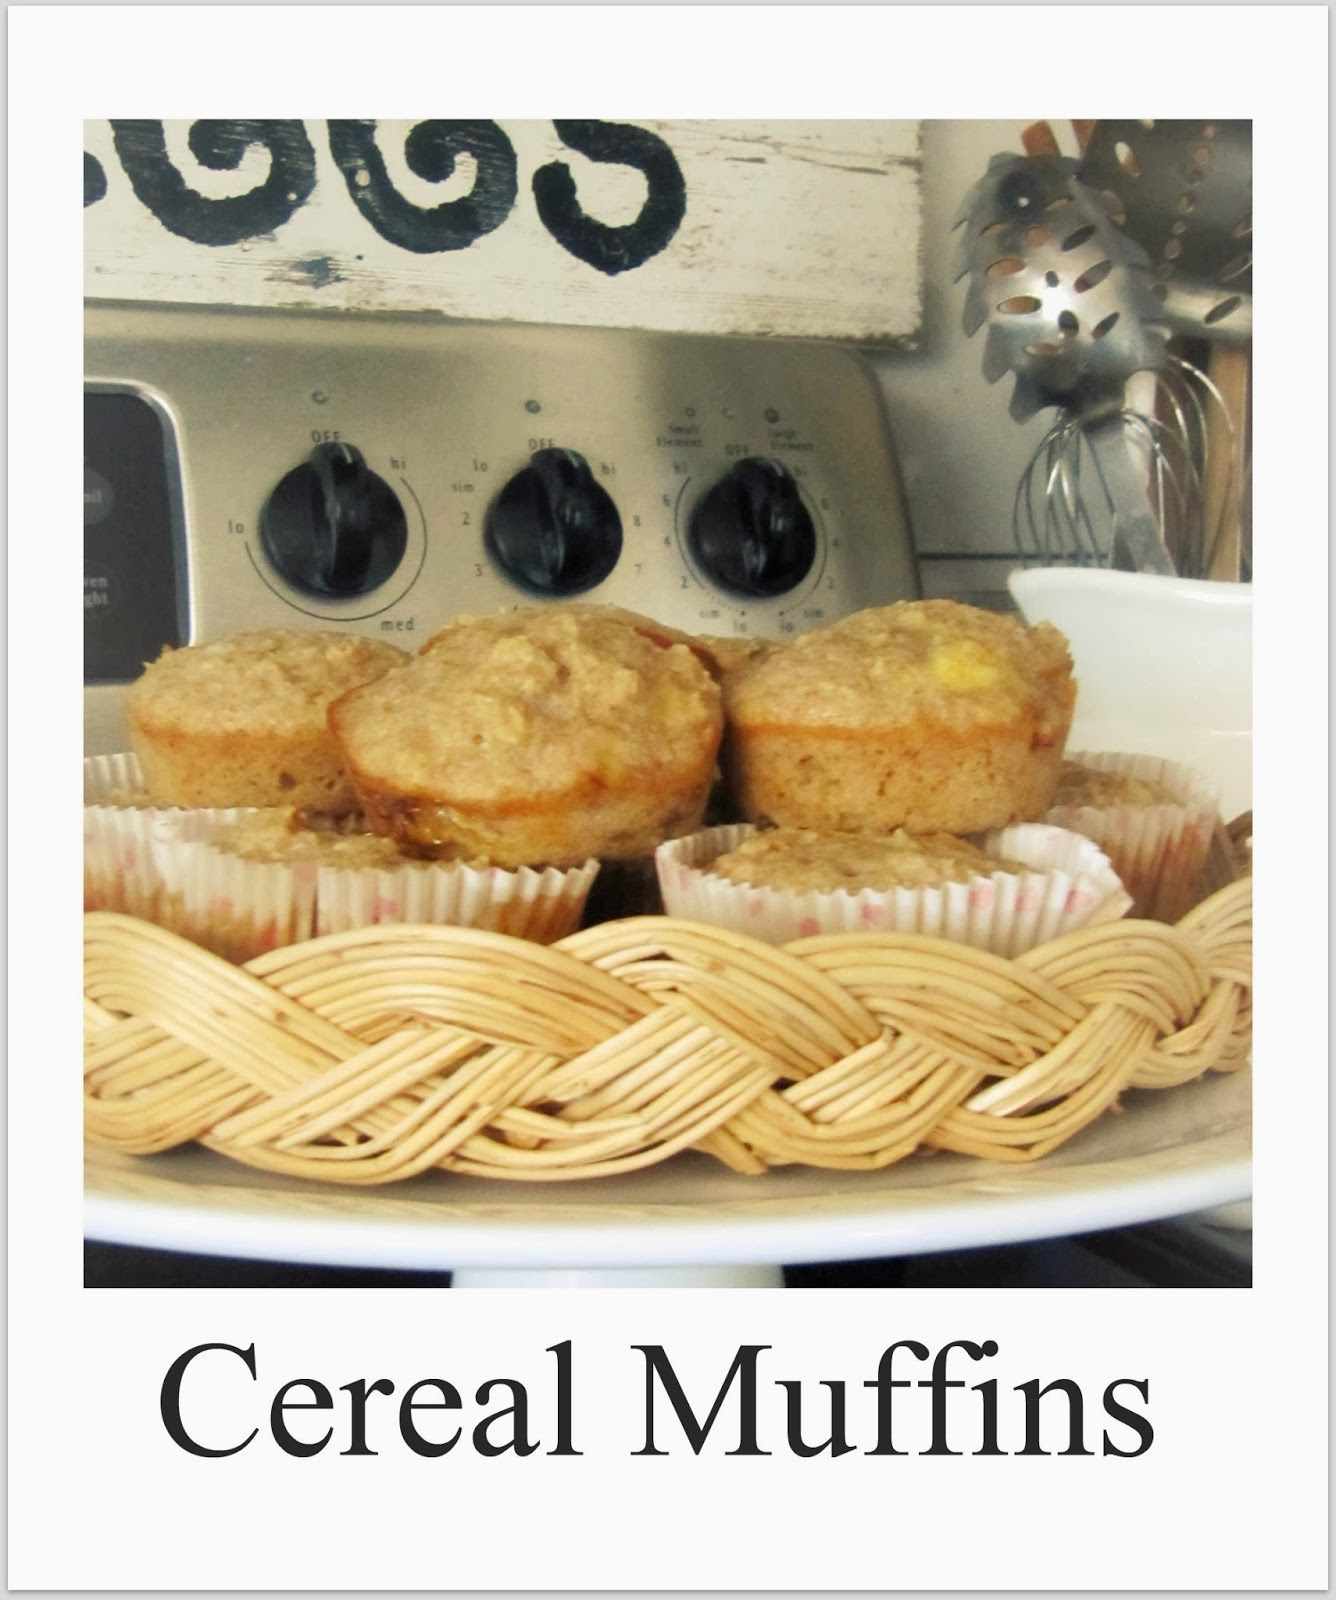 http://thewickerhouse.blogspot.com/2011/08/back-to-school-cereal-muffins.html